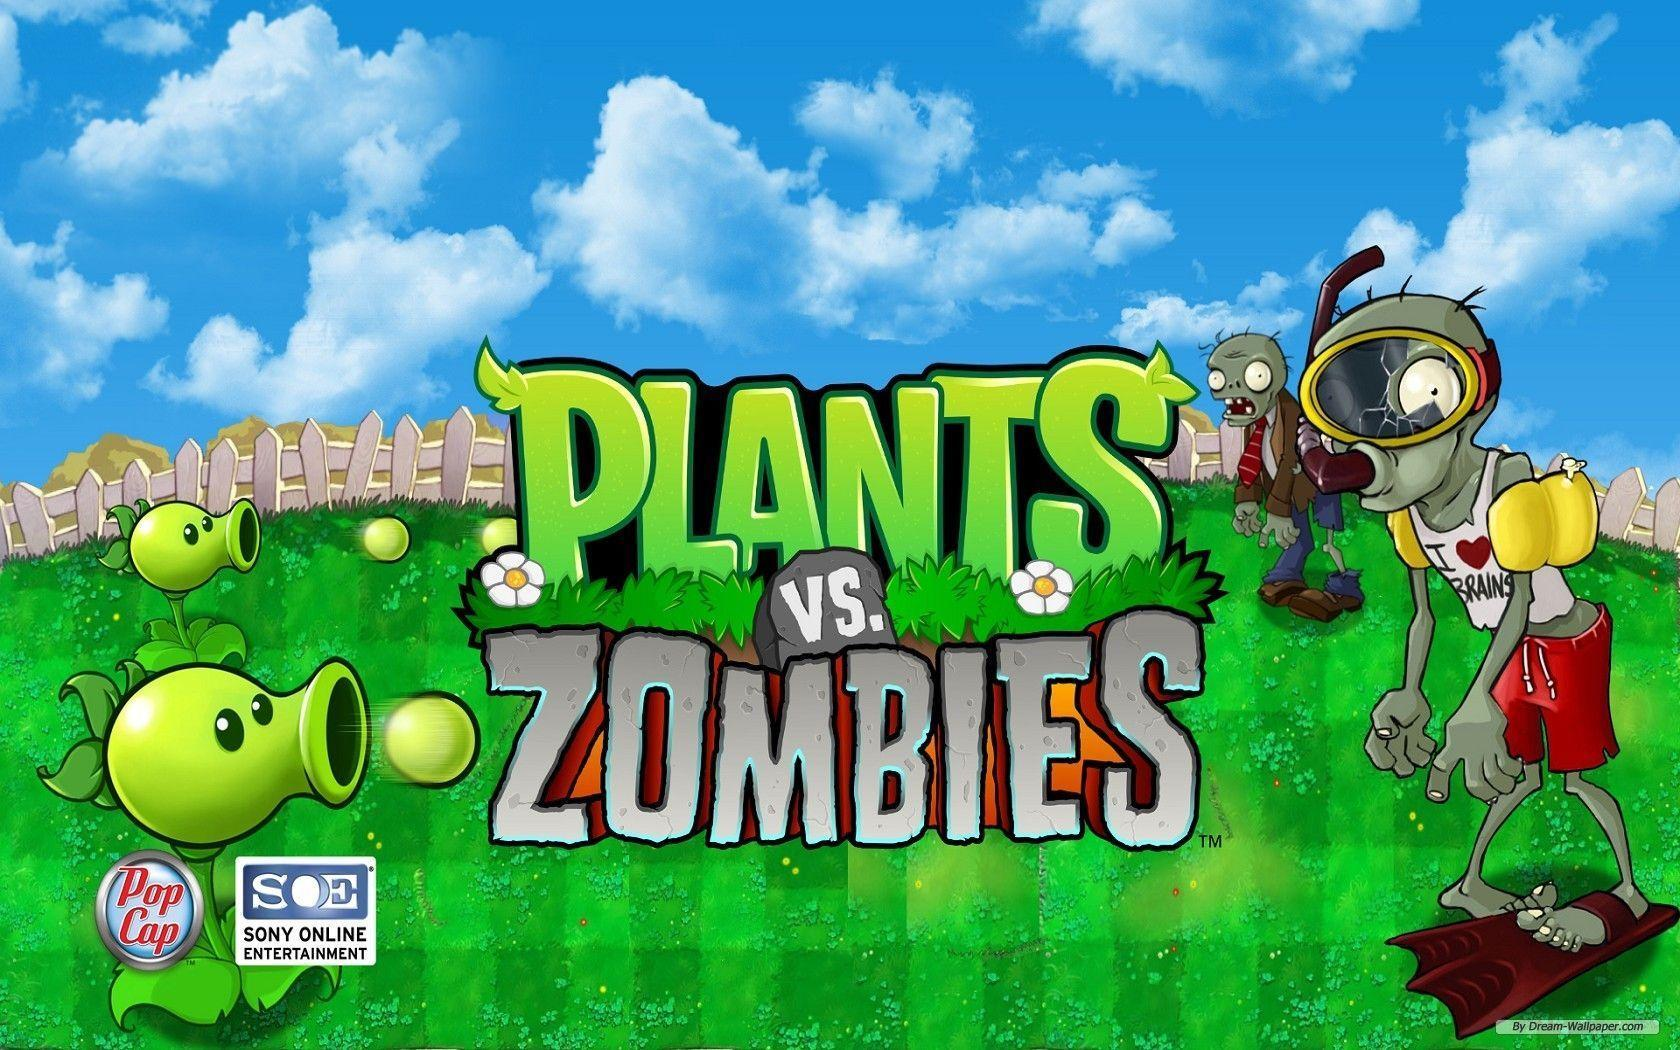 Plants vs. Zombies Wallpapers - HD Wallpapers Inn